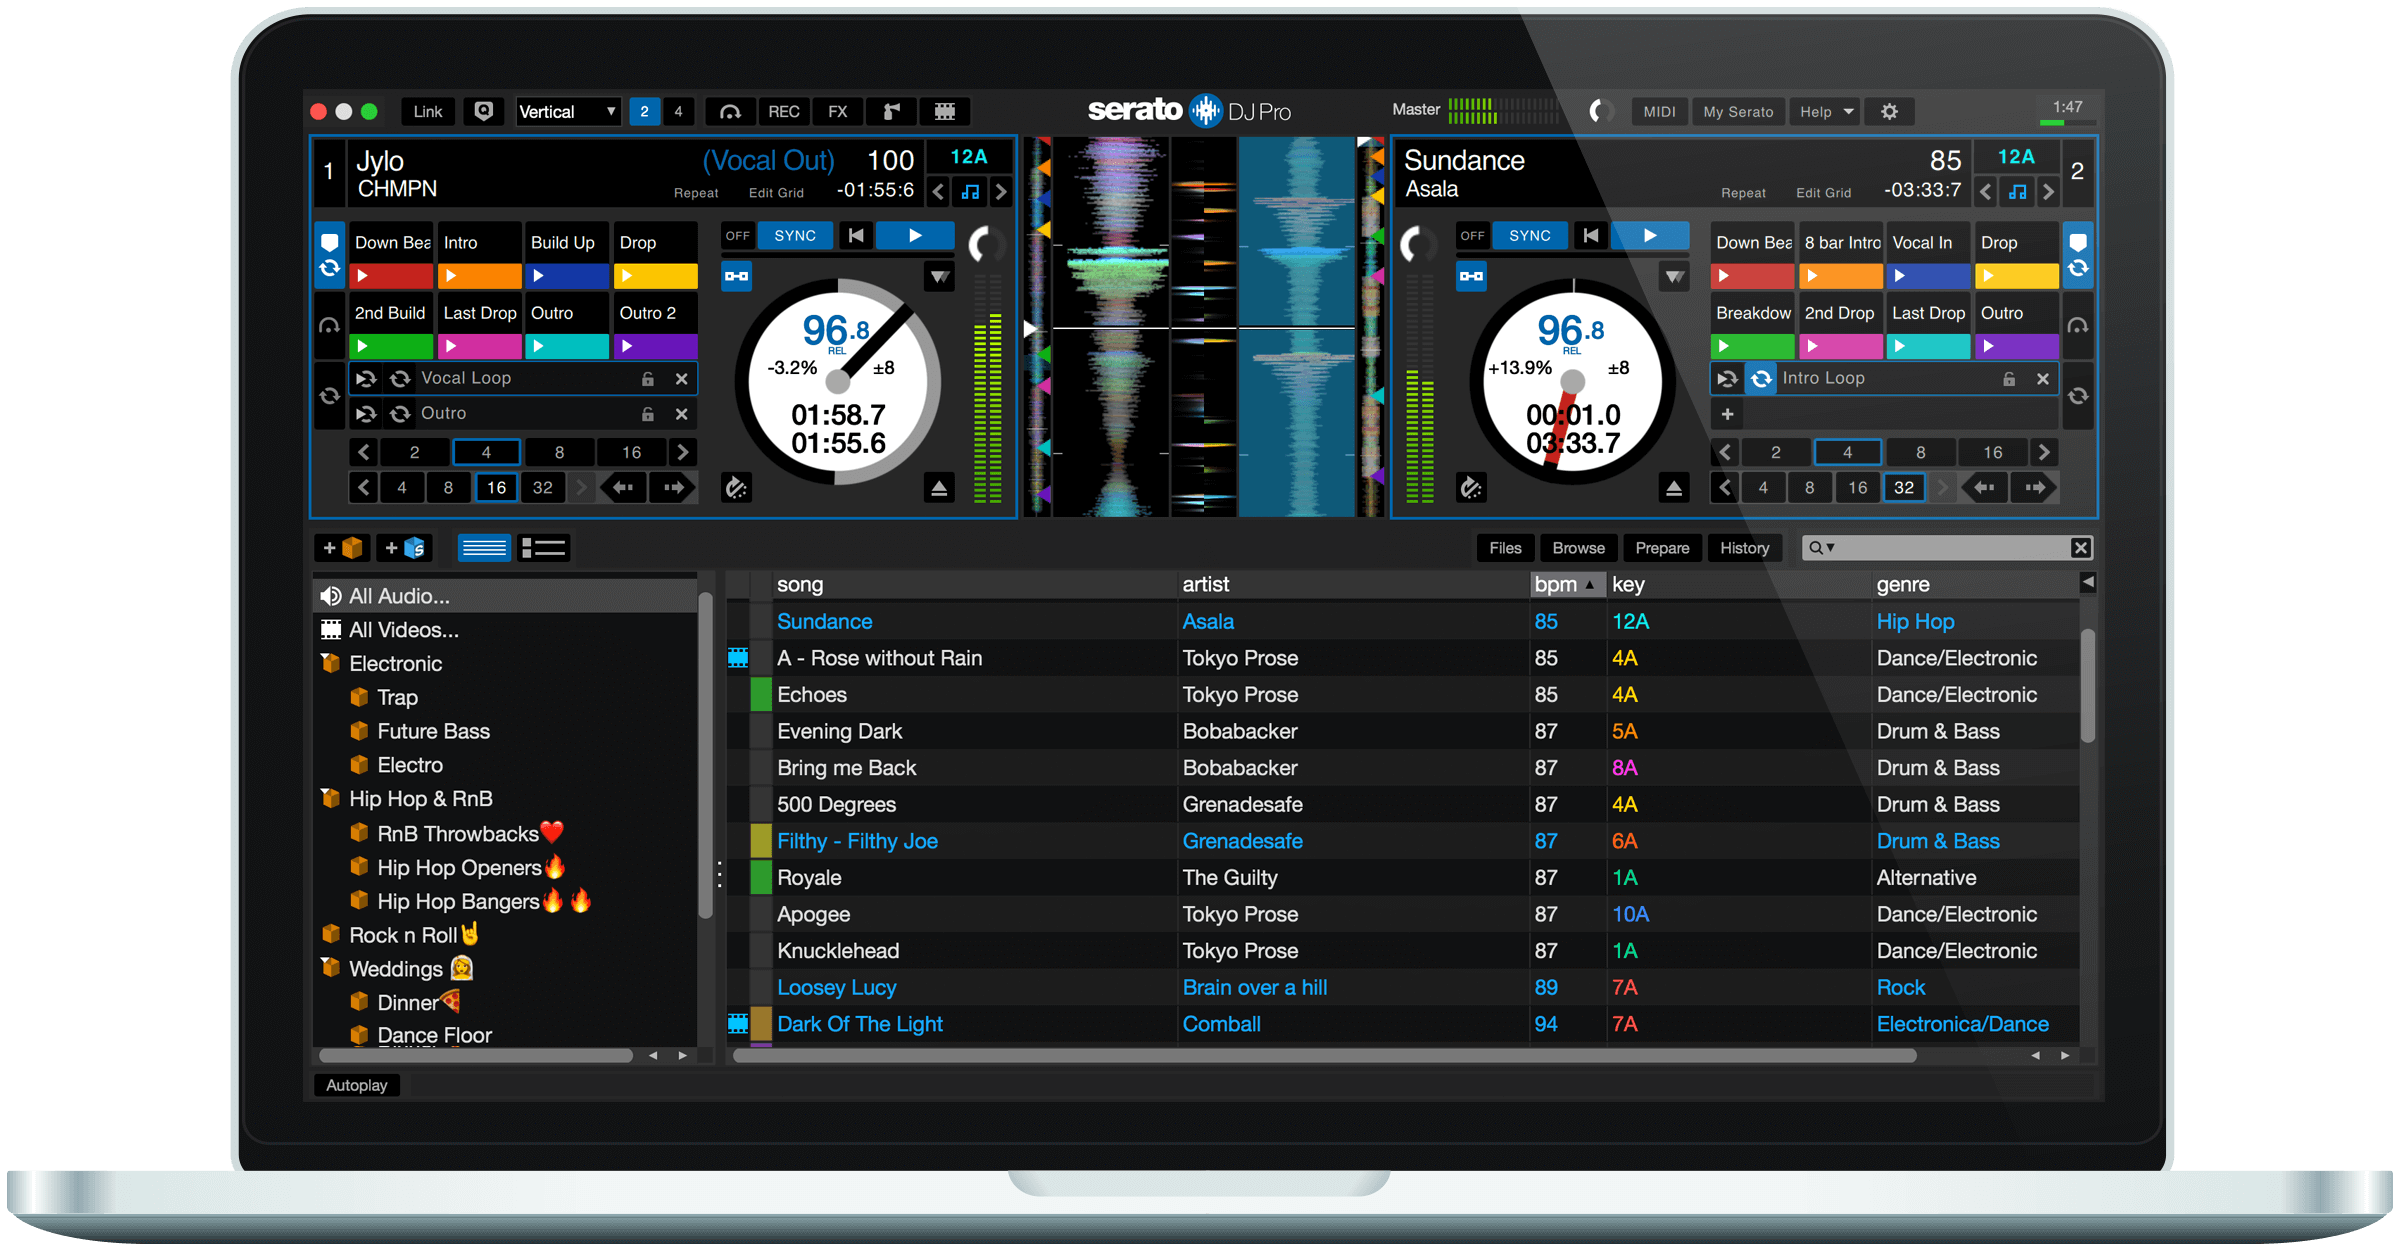 Streaming music is coming to DJ software, but one step at a time